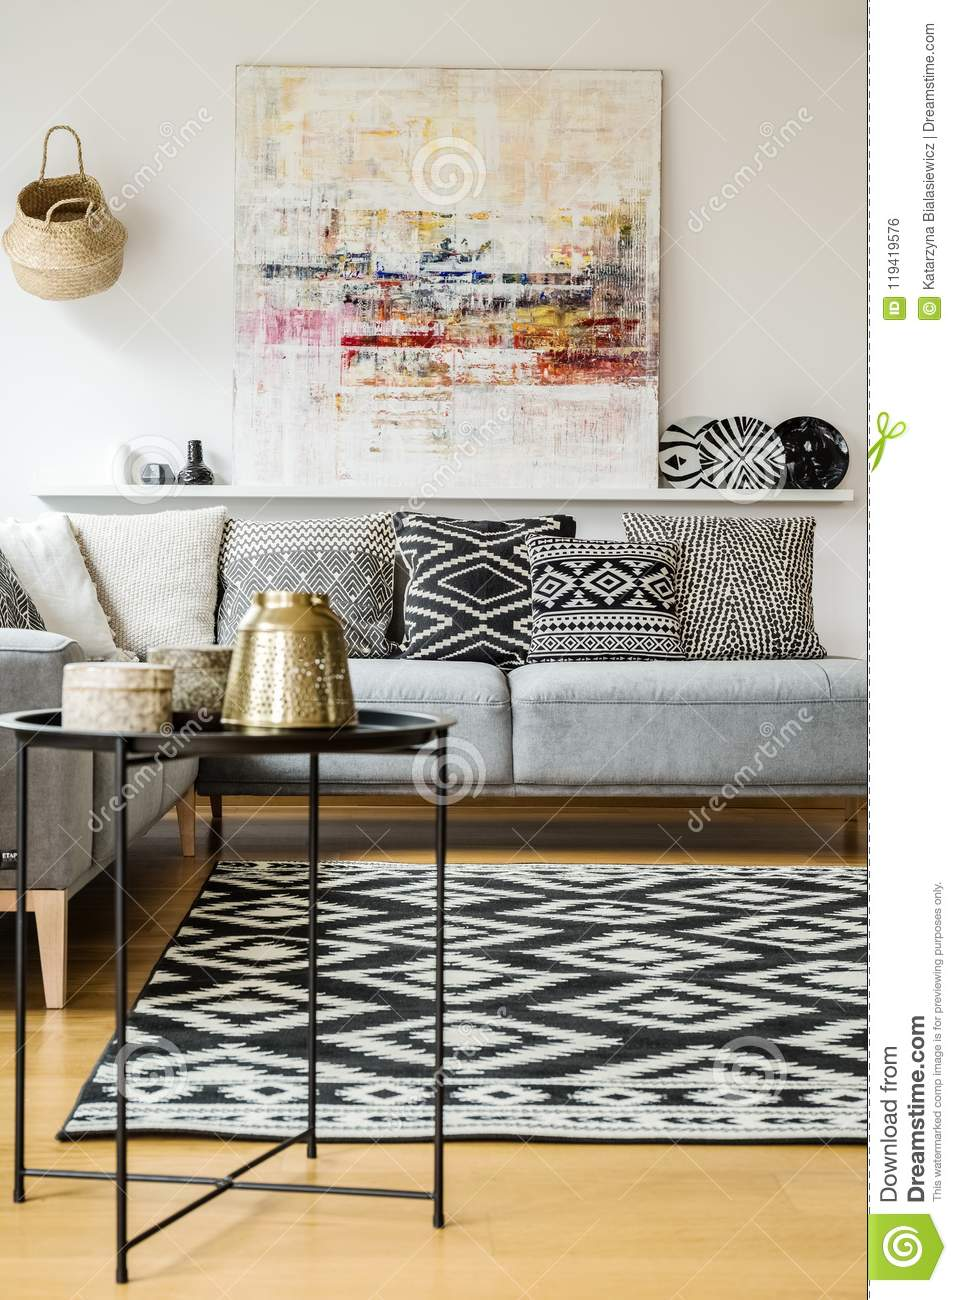 grey sofa living room carpet white cupboard patterned and cushions on in modern